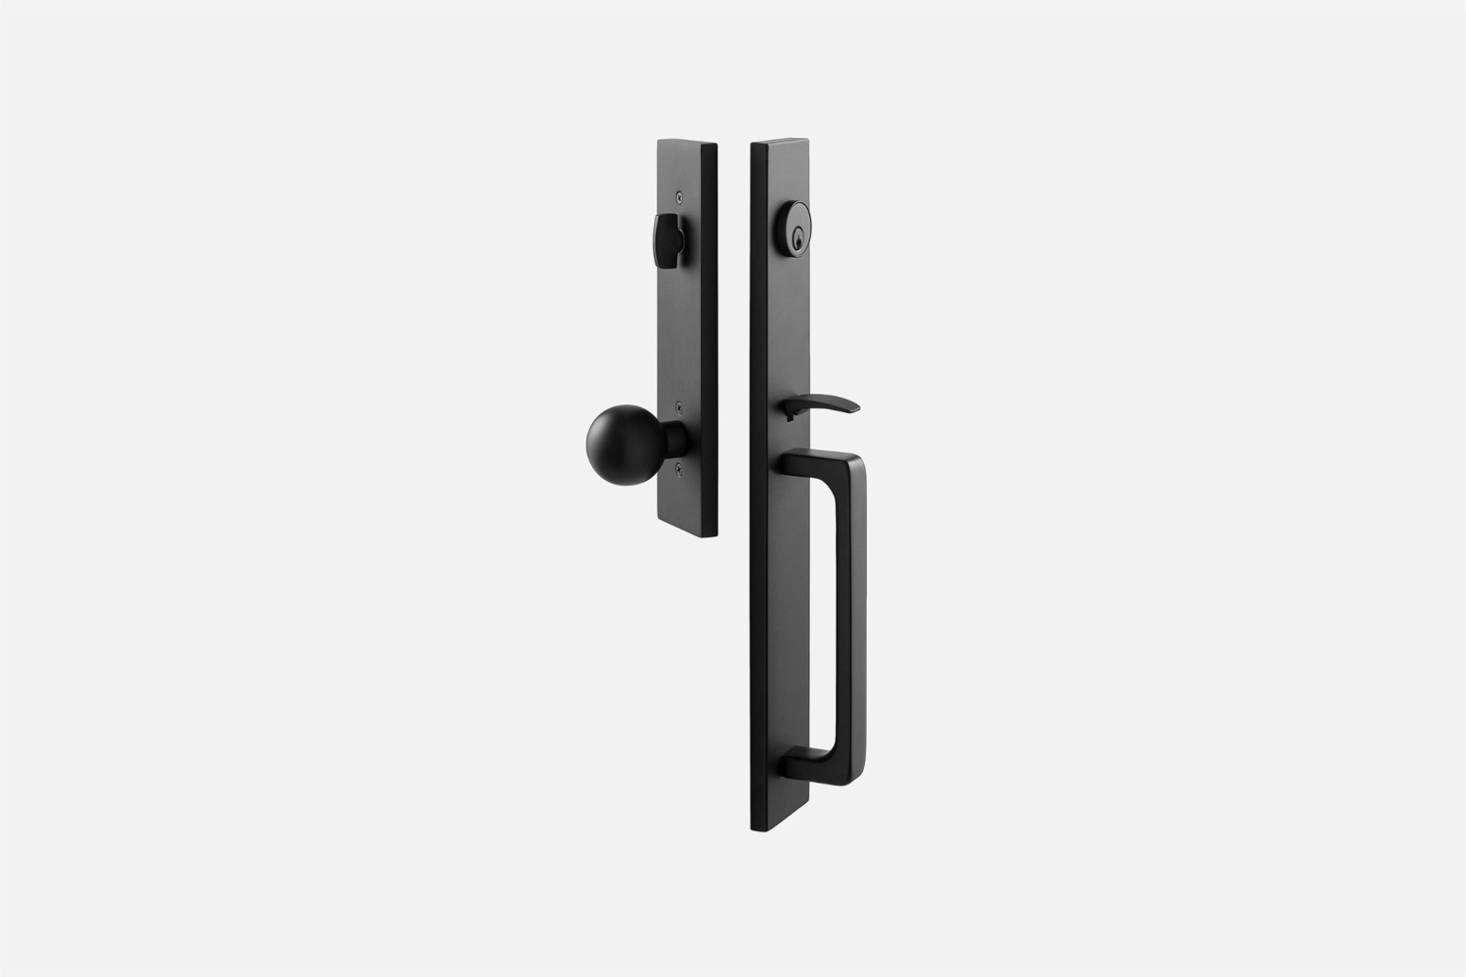 The Lausanne Entrance Handle Set with Globe Knob by Emtek is made of solid brass parts for $364 at Schoolhouse.